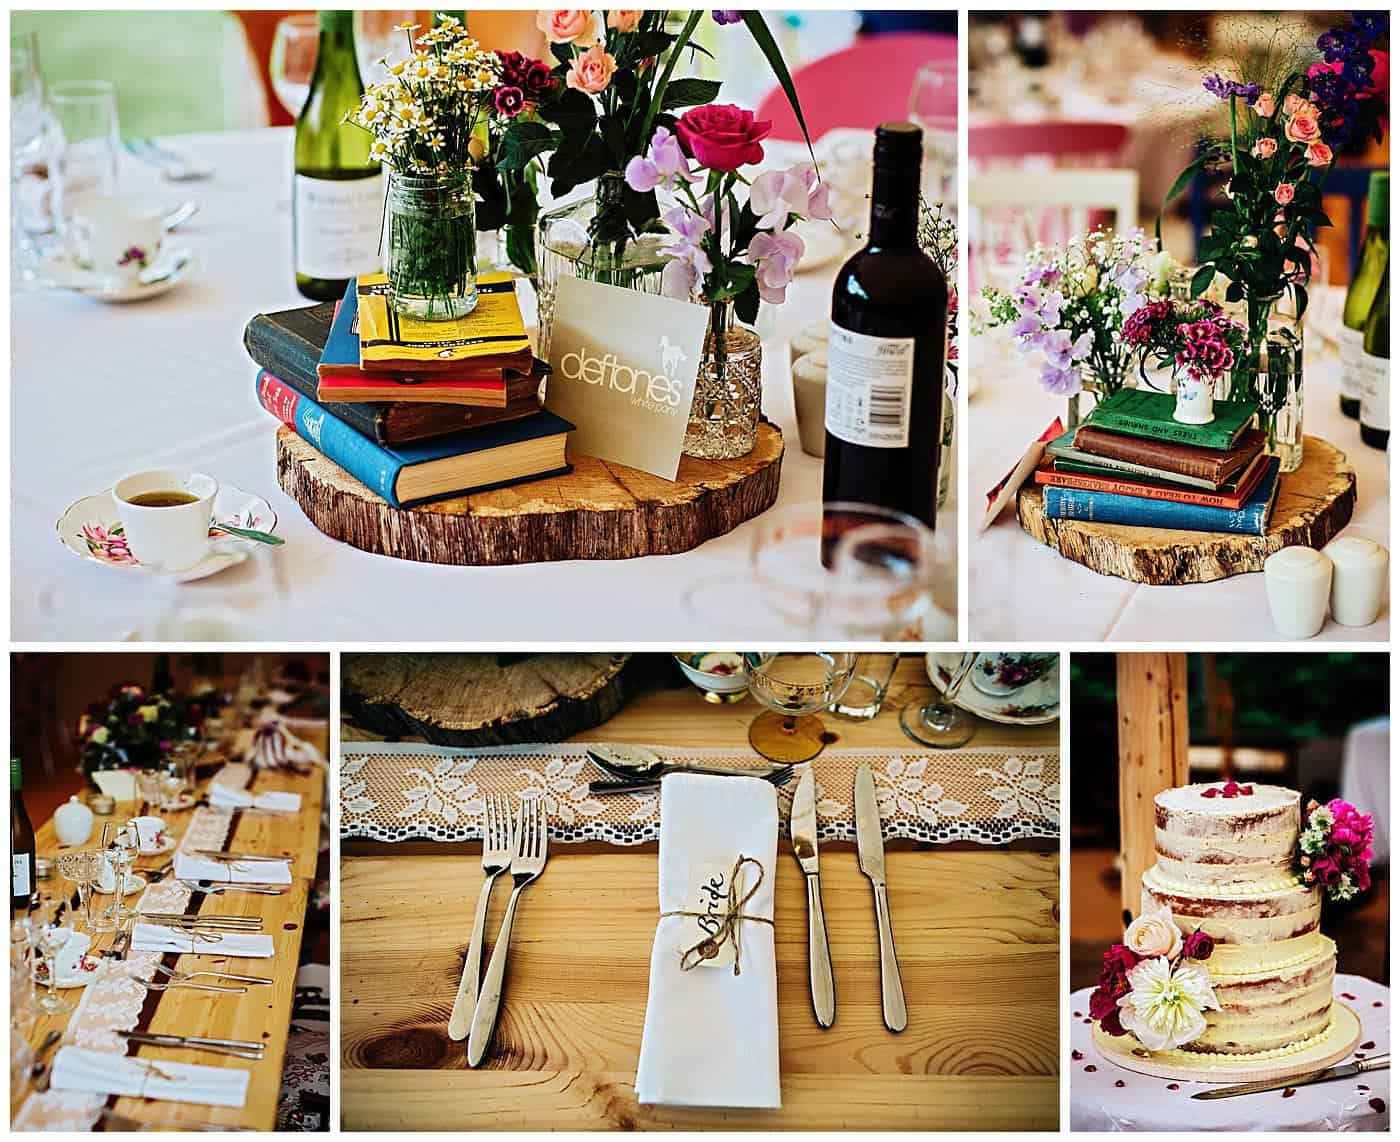 Woodthorpe Hall Wedding decor